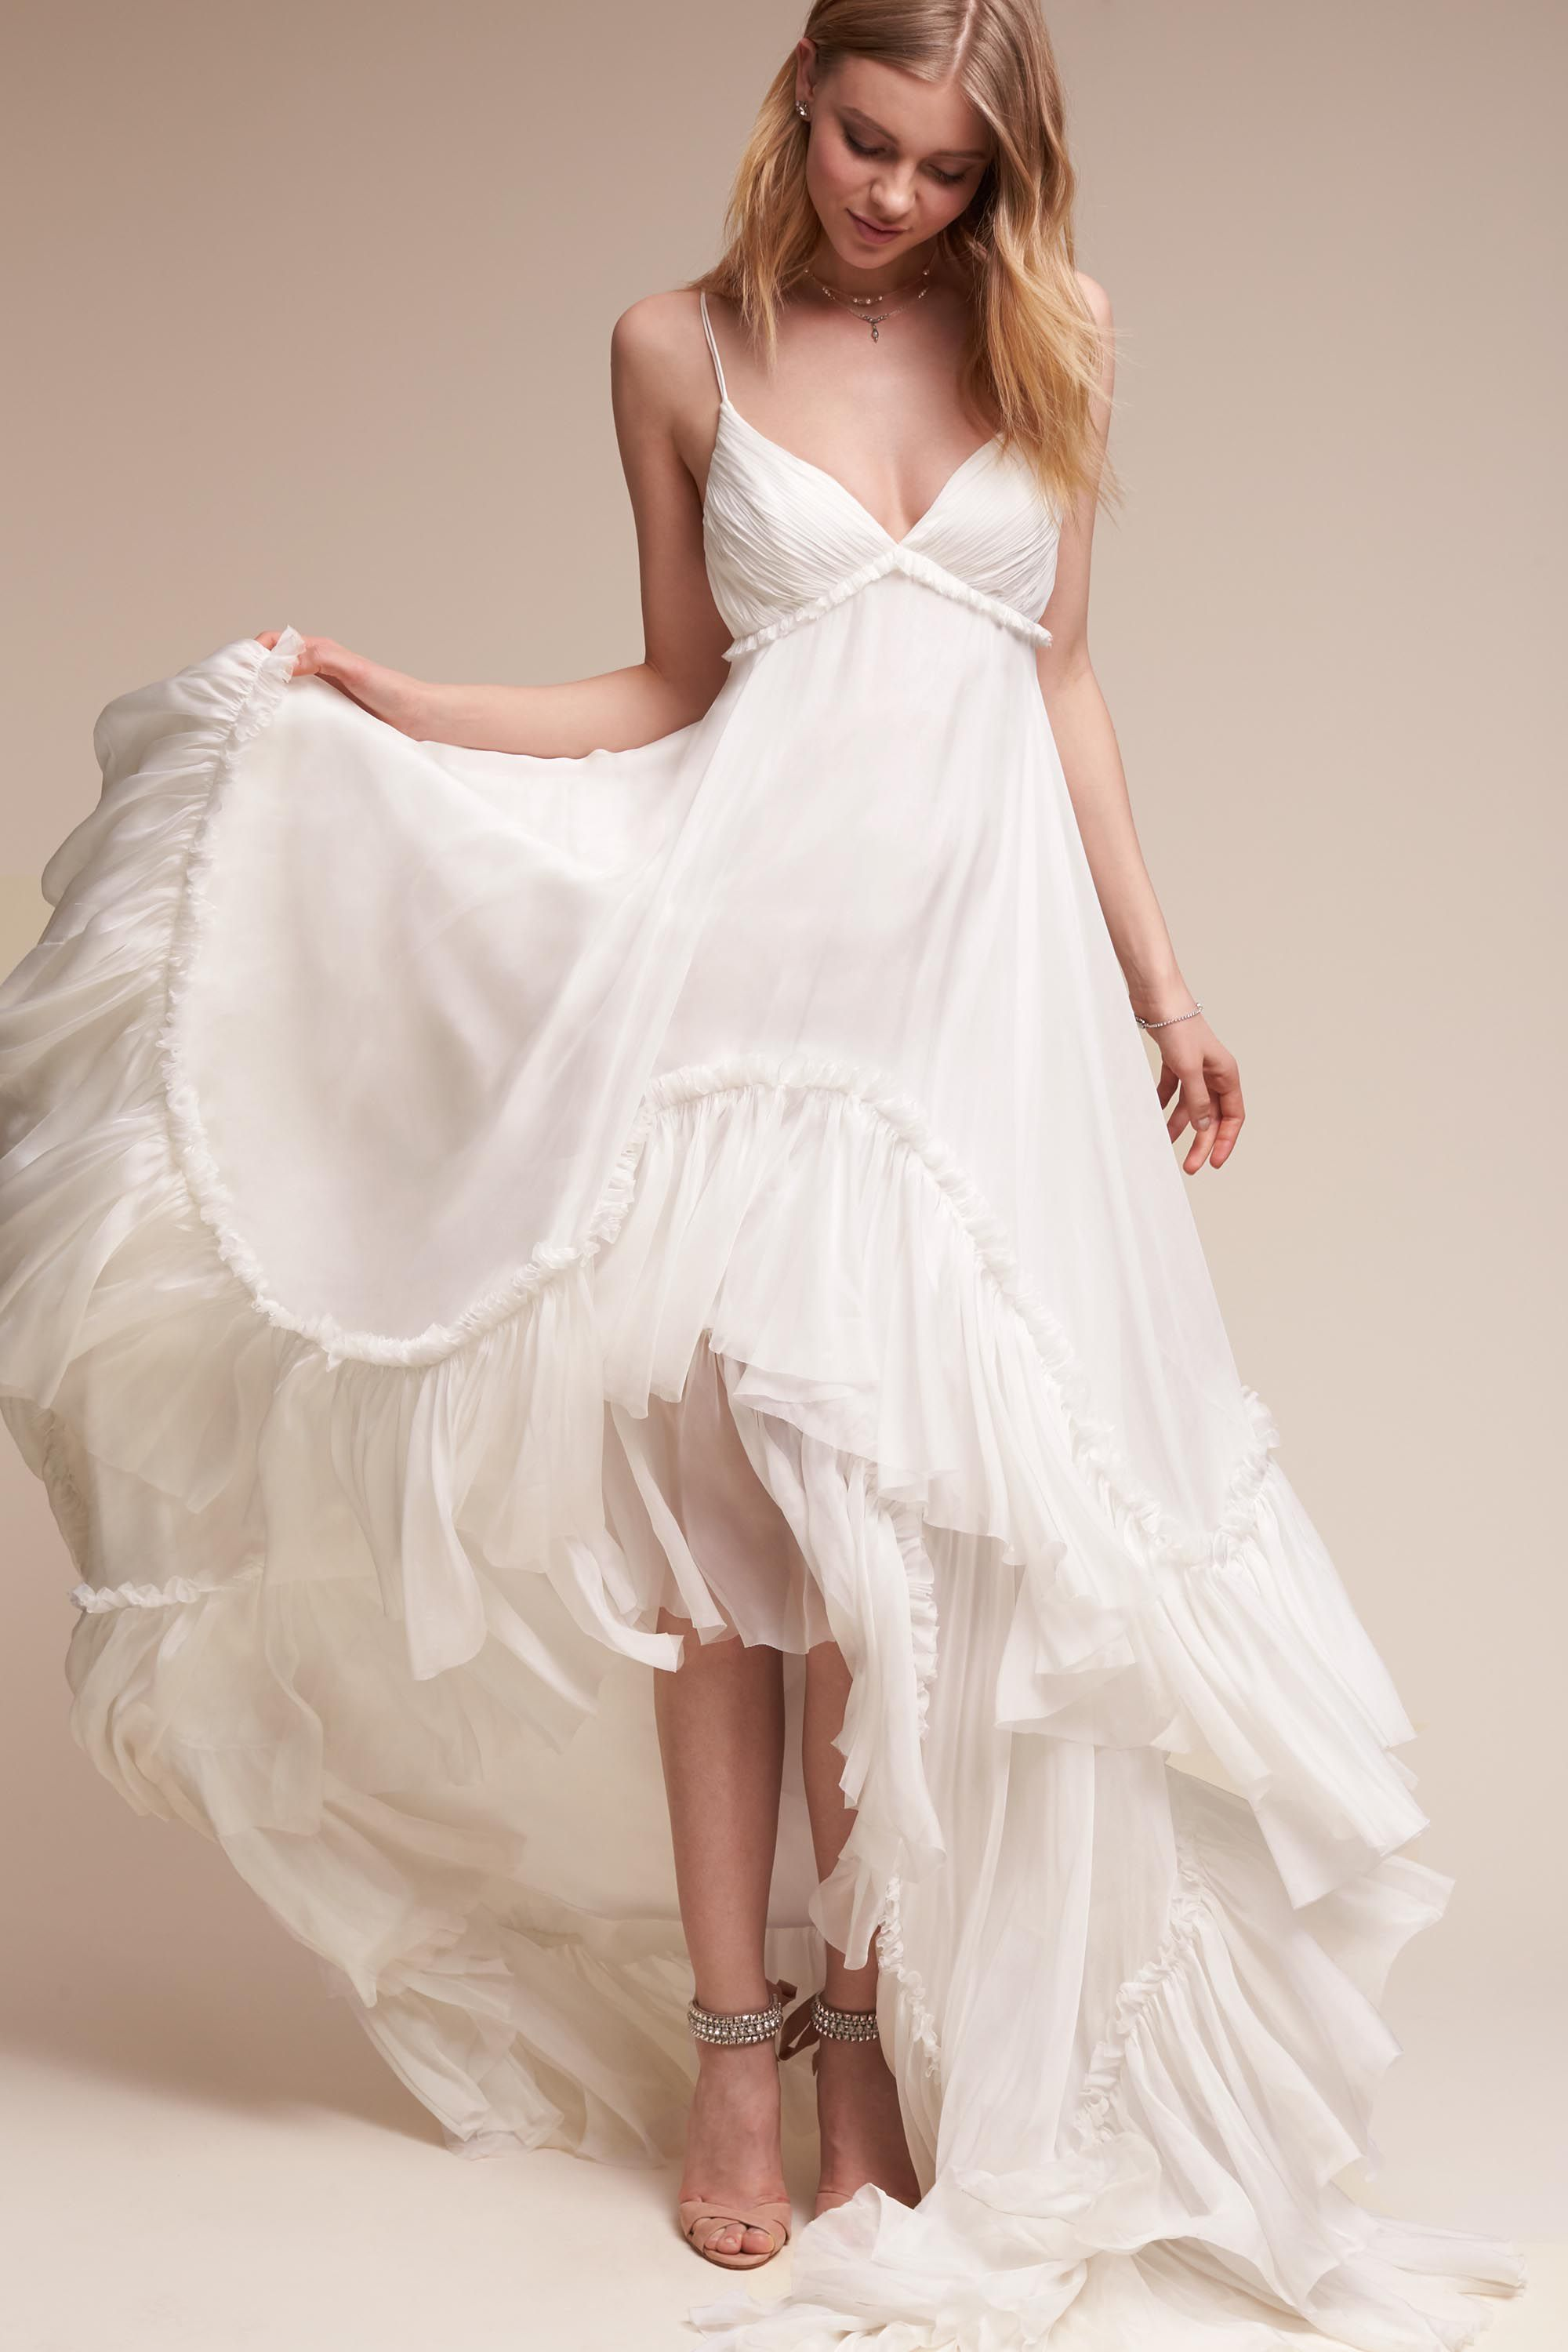 shop the bride beach destination dresses pics of wedding dresses Soie Gown